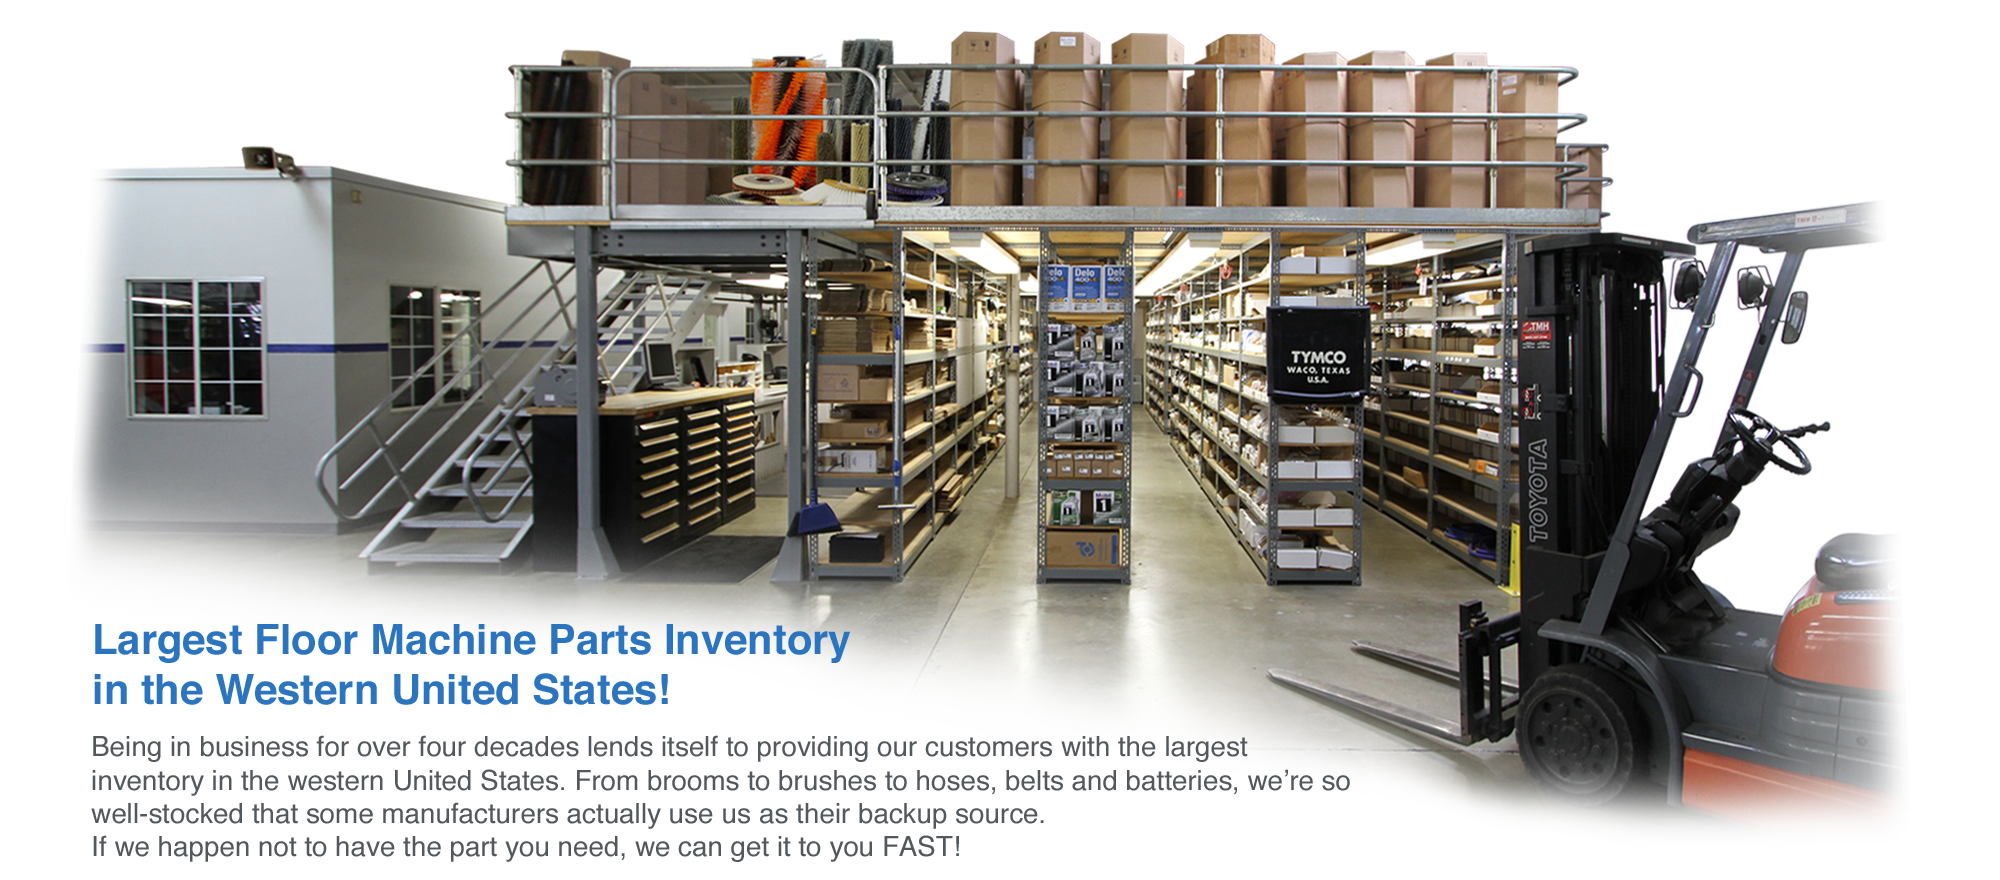 Being in business for over four decades lends itself to providing our customers with the largest inventory in the western United States. From brooms to brushes to hoses, belts and batteries, we're so well-stocked that some manufacturers actually use us as their backup source for their own dealers. If we happen not to have the part you need, we can get it to you FAST!